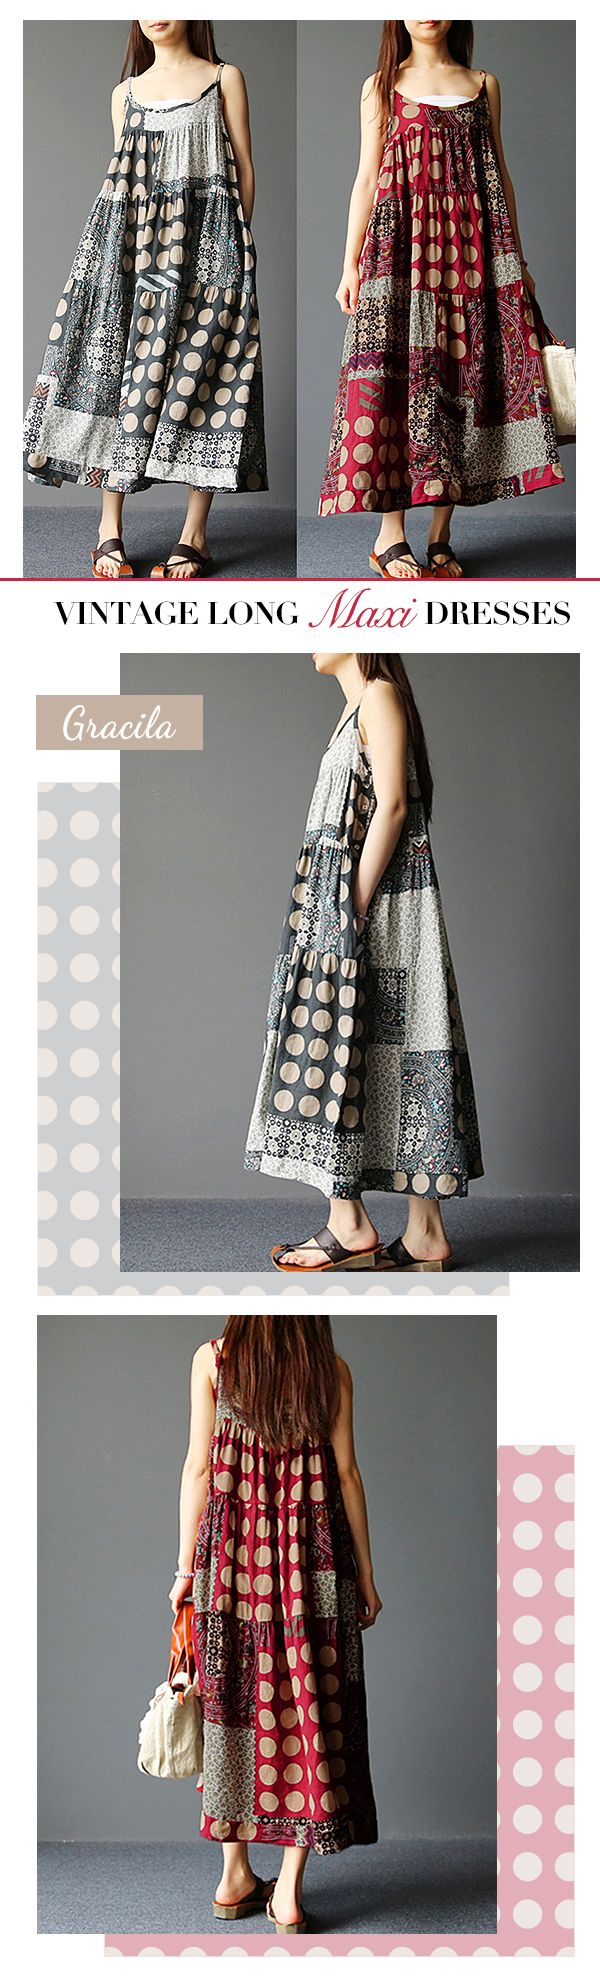 US$ 20.85 Gracila Spaghetti Strap Ethnic Printed Women Vintage Long Maxi Dresses